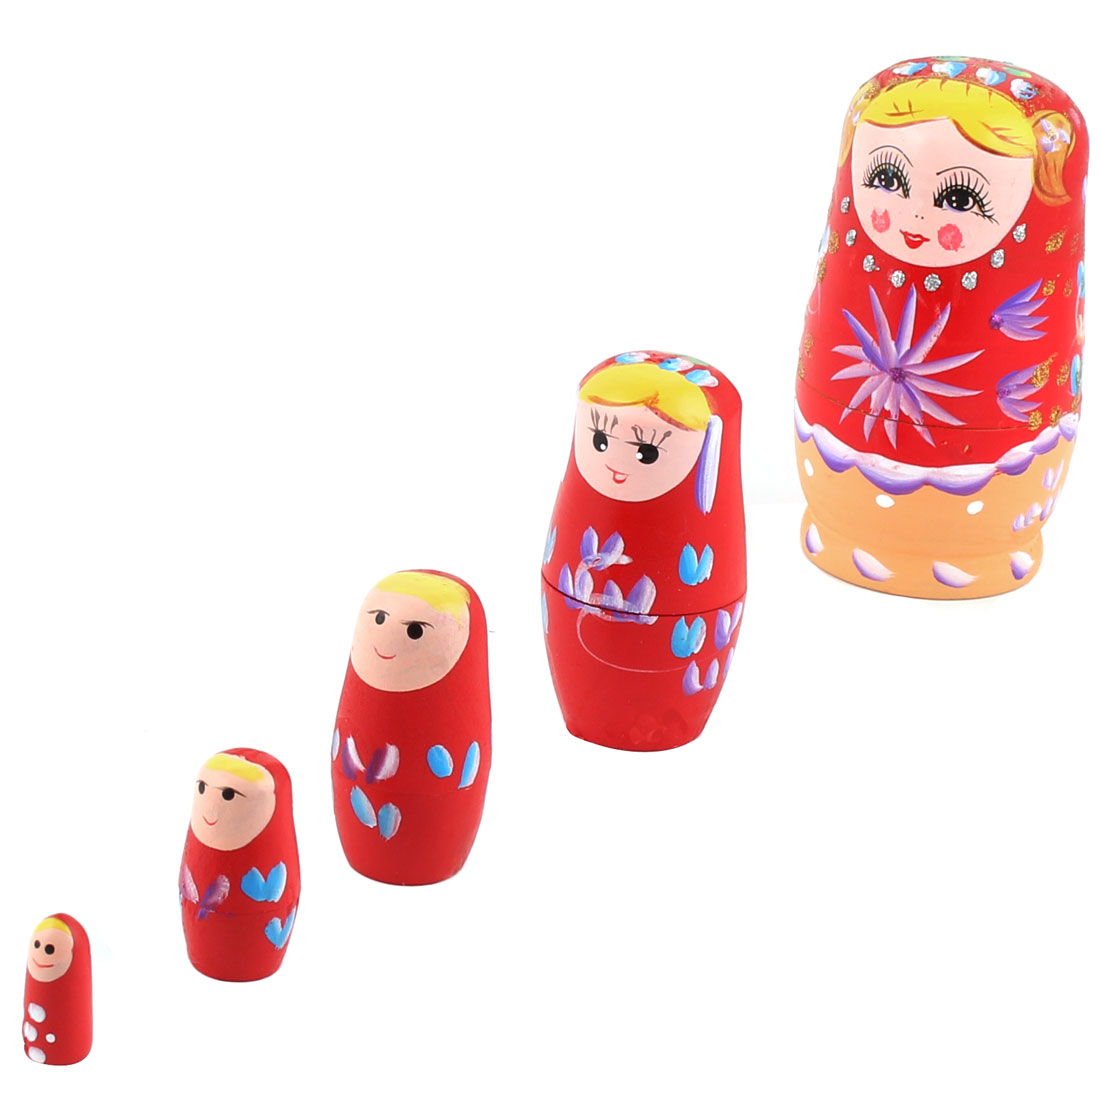 Wooden Hand Painted Russian Nesting Dolls Matryoshka Gift Red Set 5 in 1